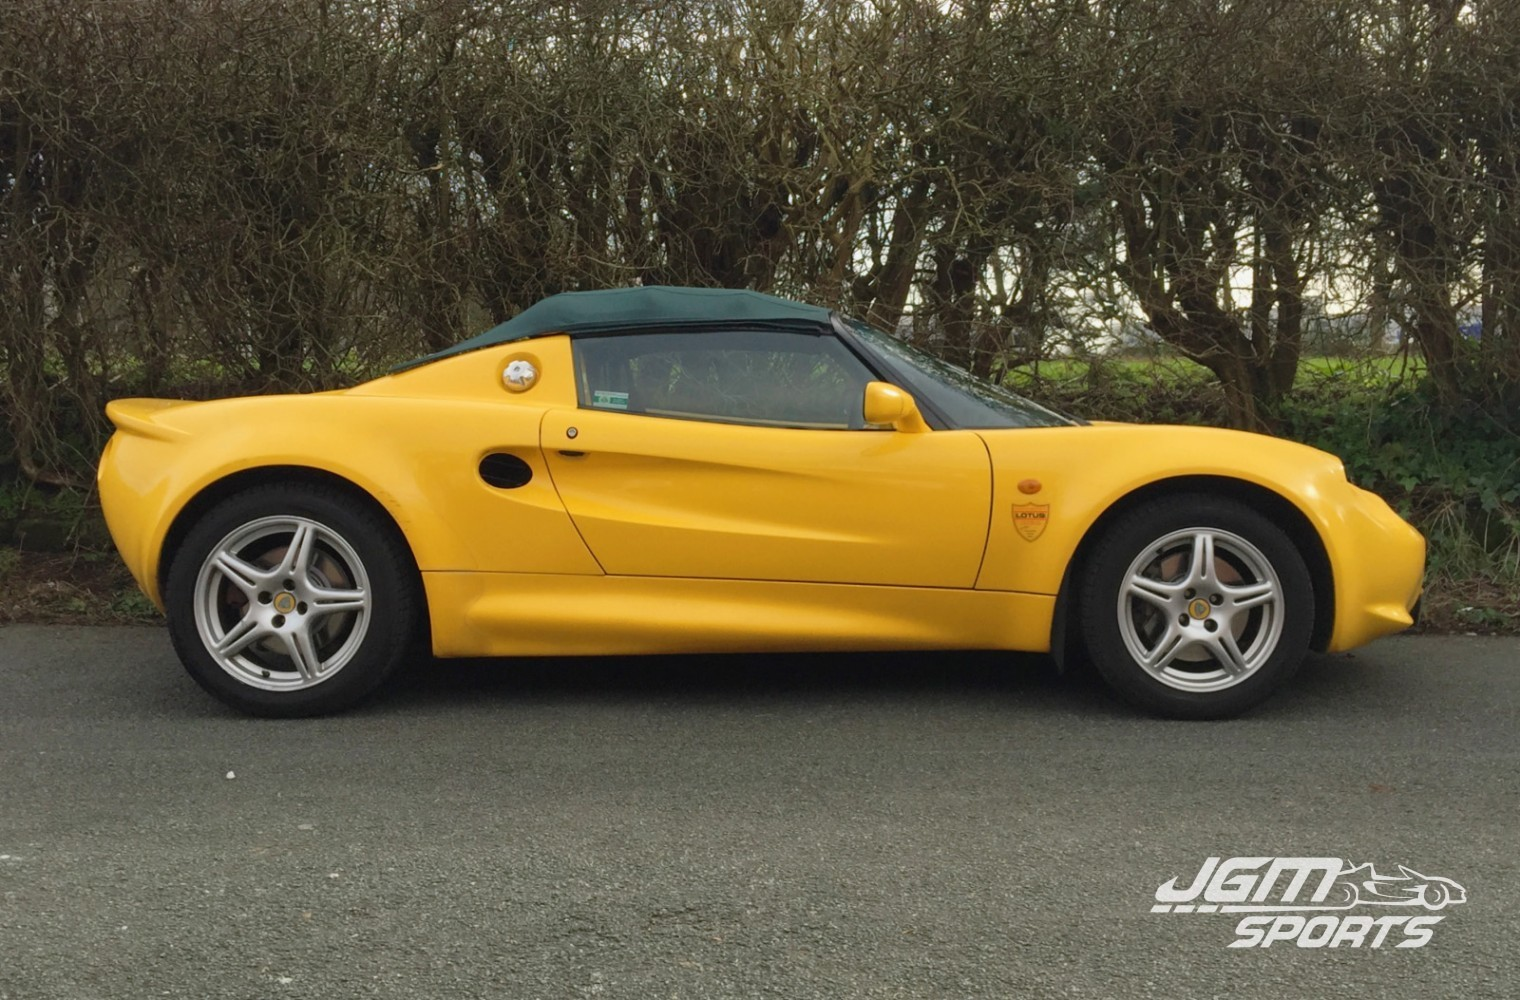 Cars for sale jgmsports sold 1999 s1 lotus elise metalic mustard yellow with green roof interior vanachro Image collections